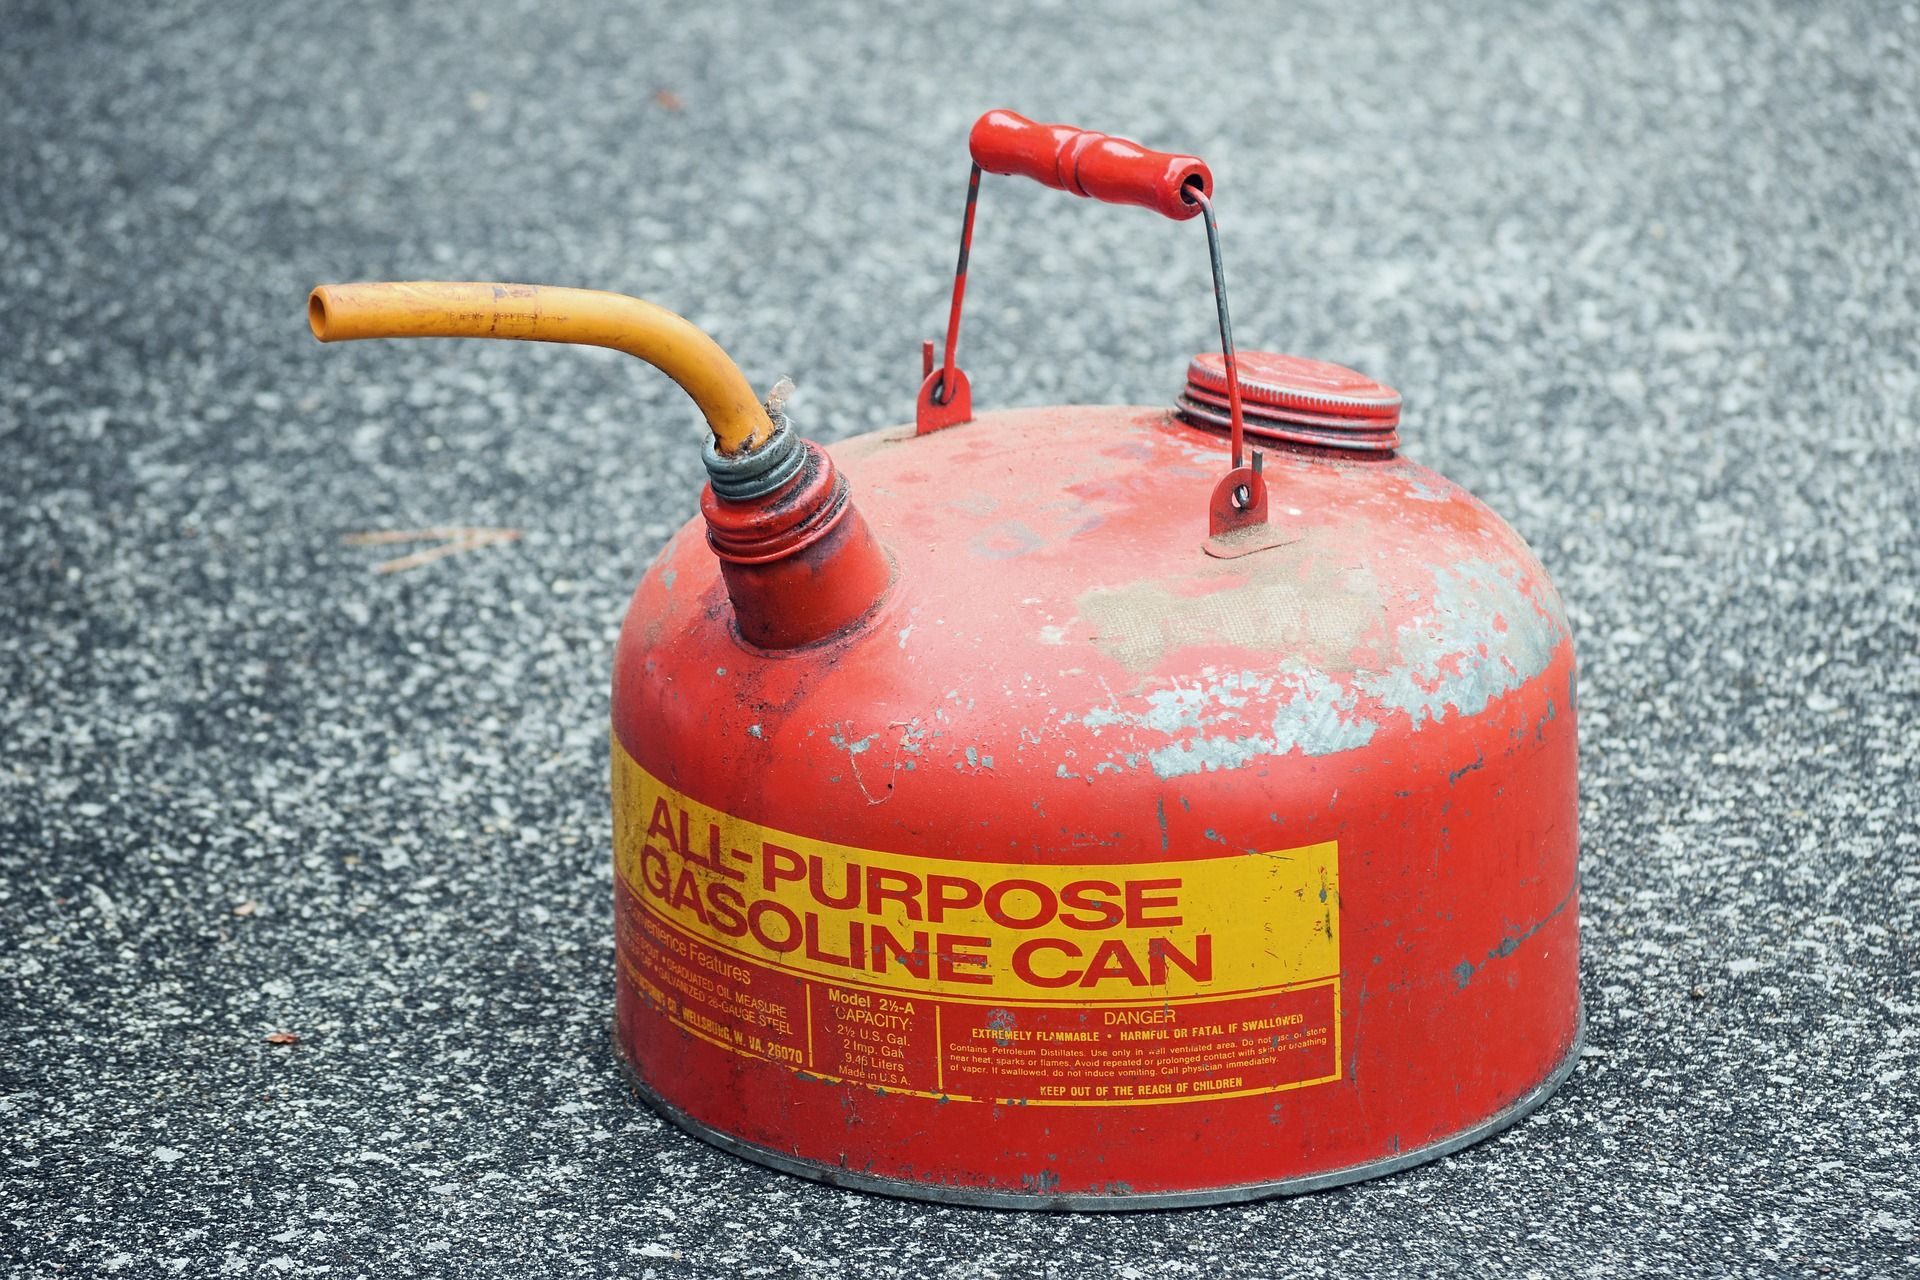 Lawn Mowers And Fuel Issues Gas Cans Canning Lawn Mower